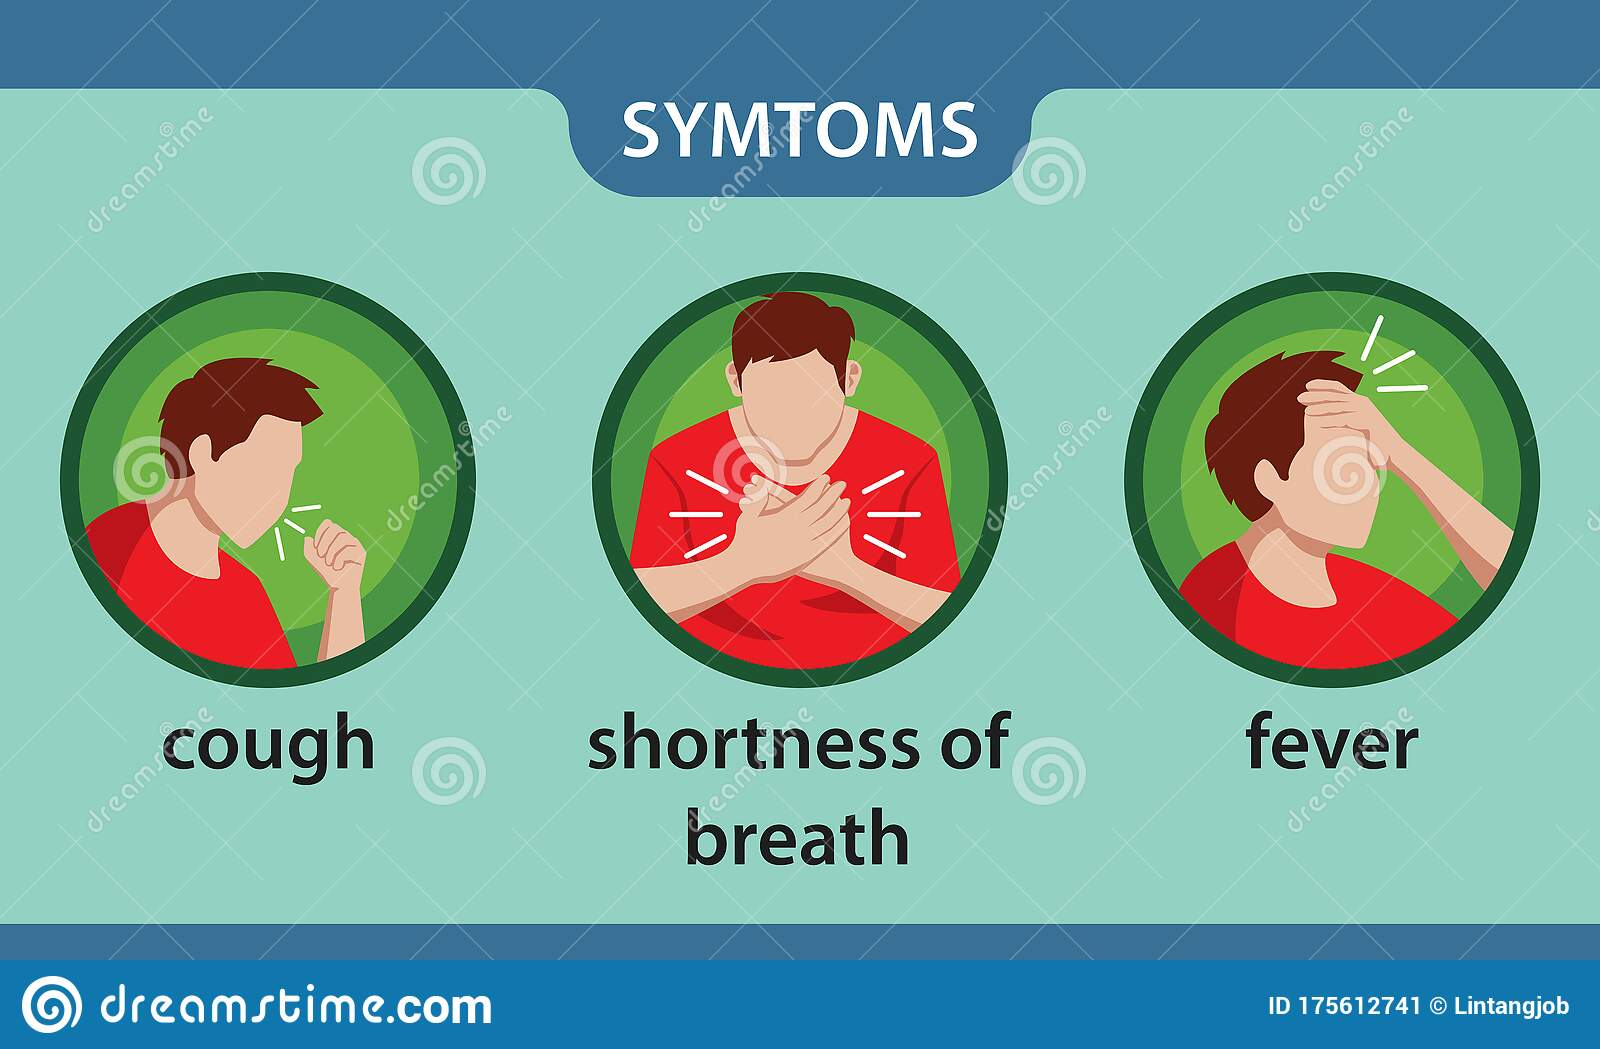 Coughing With Shortness Of Breath?